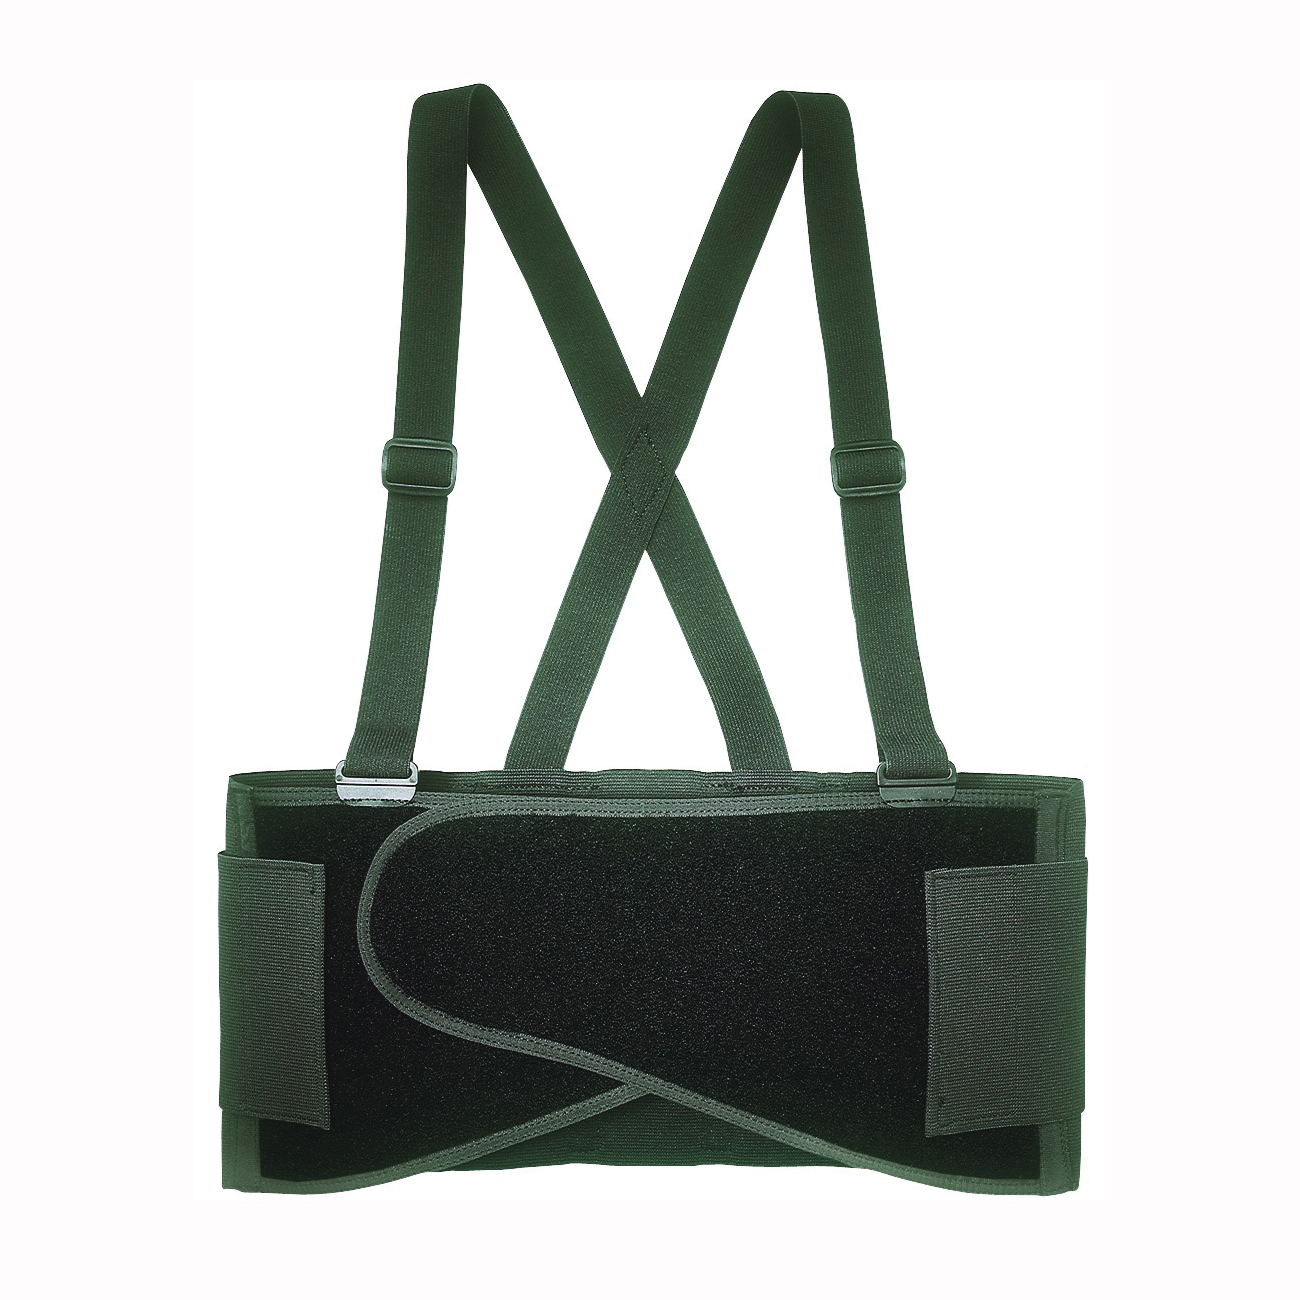 Picture of CLC 5000X Back Support Belt, XL, Fits to Waist Size: 46 to 56 in